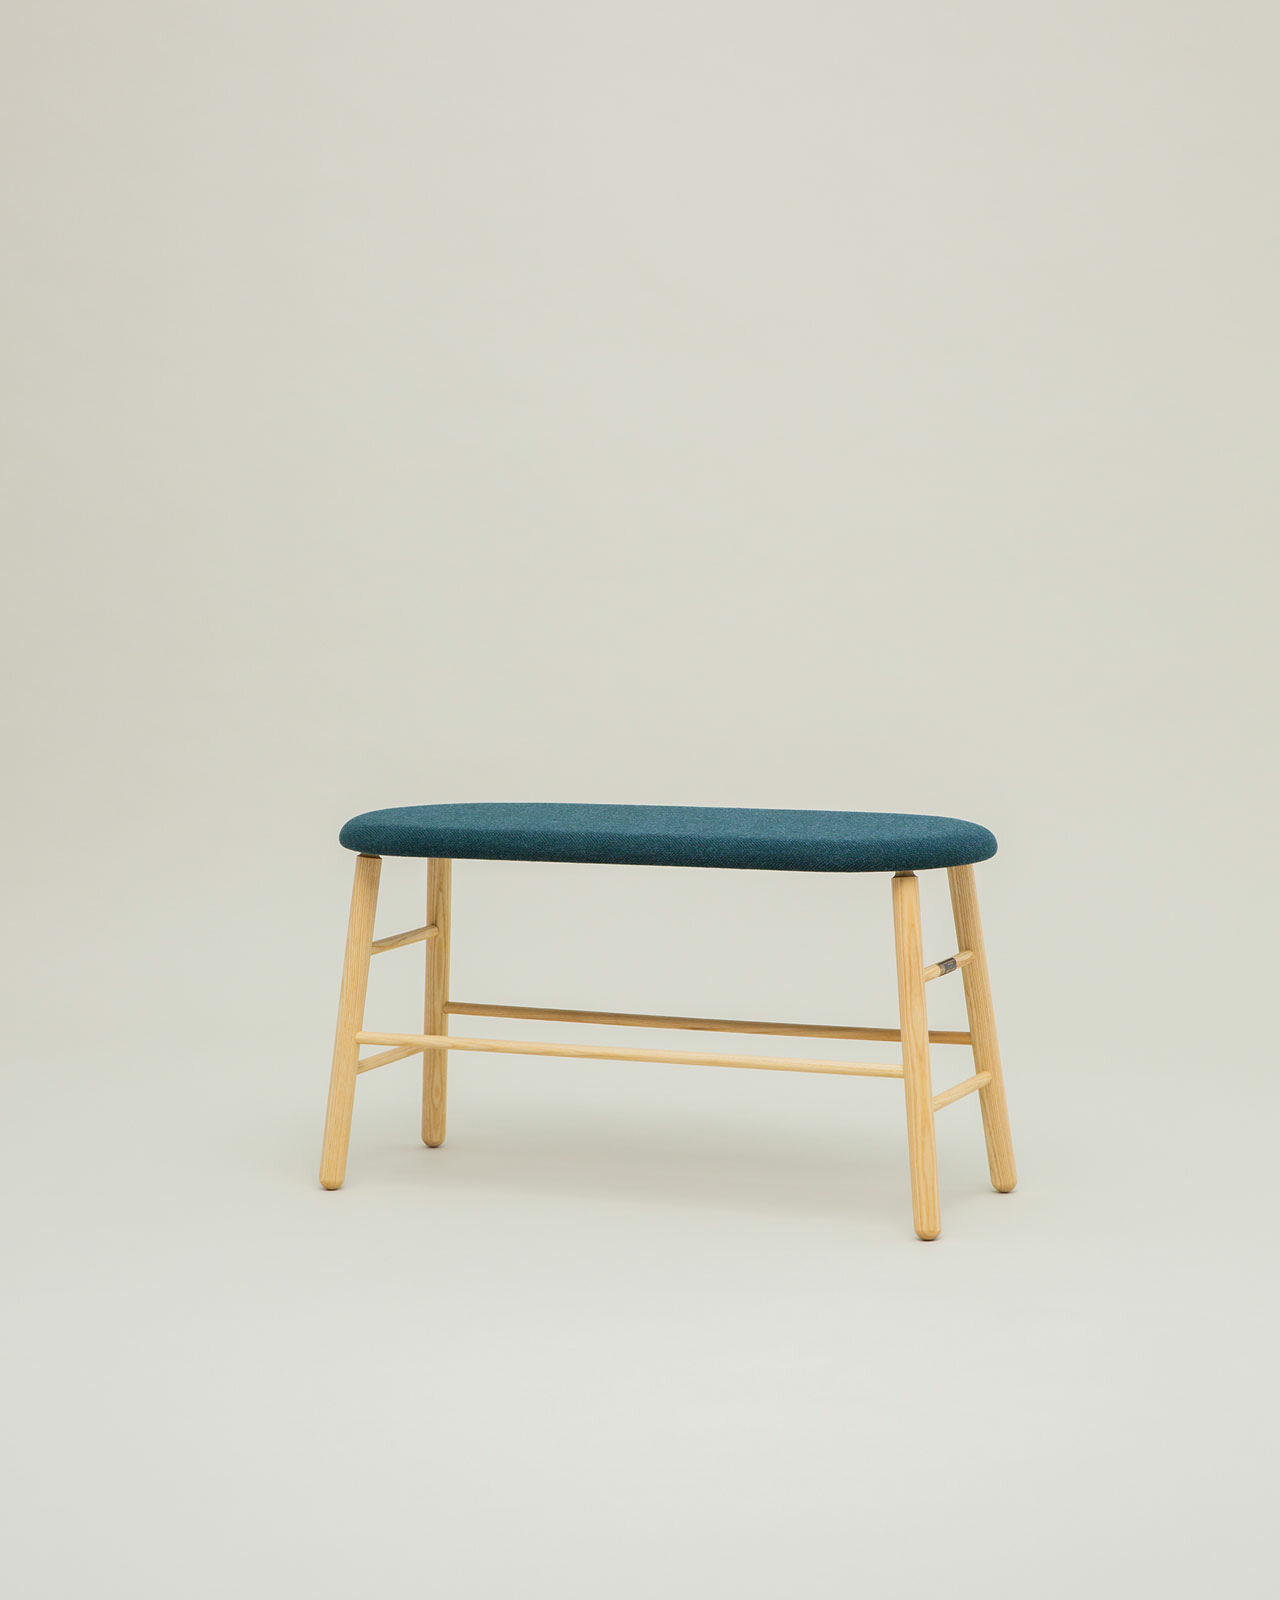 Deschutes Bench - Fabric